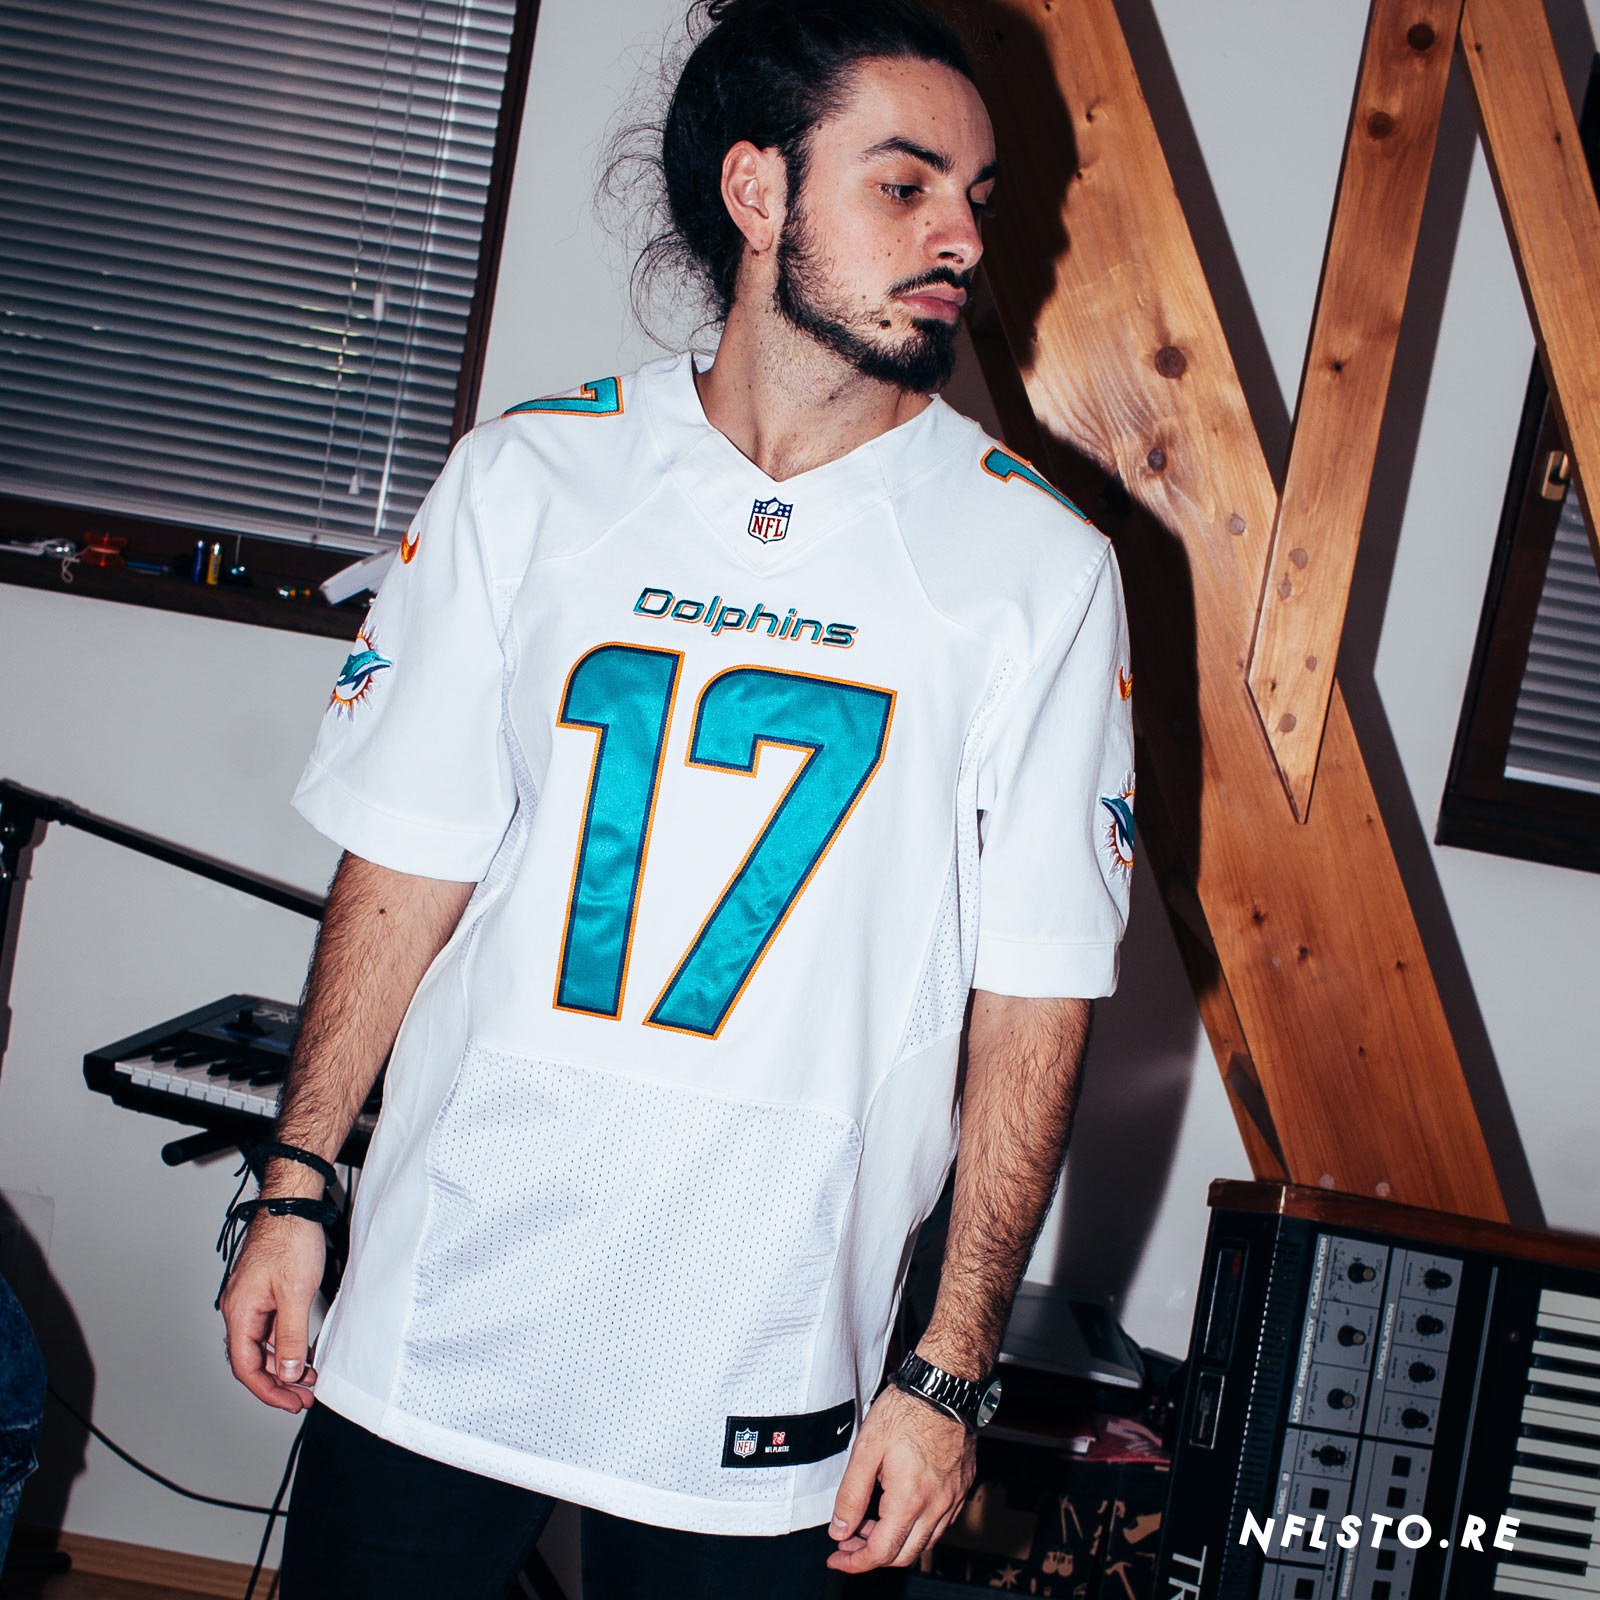 low priced b391a 9bd5e Nike Jersey NFL Miami Dolphins 17 Ryan Tannehill Elite • NFLSTORE. Europe